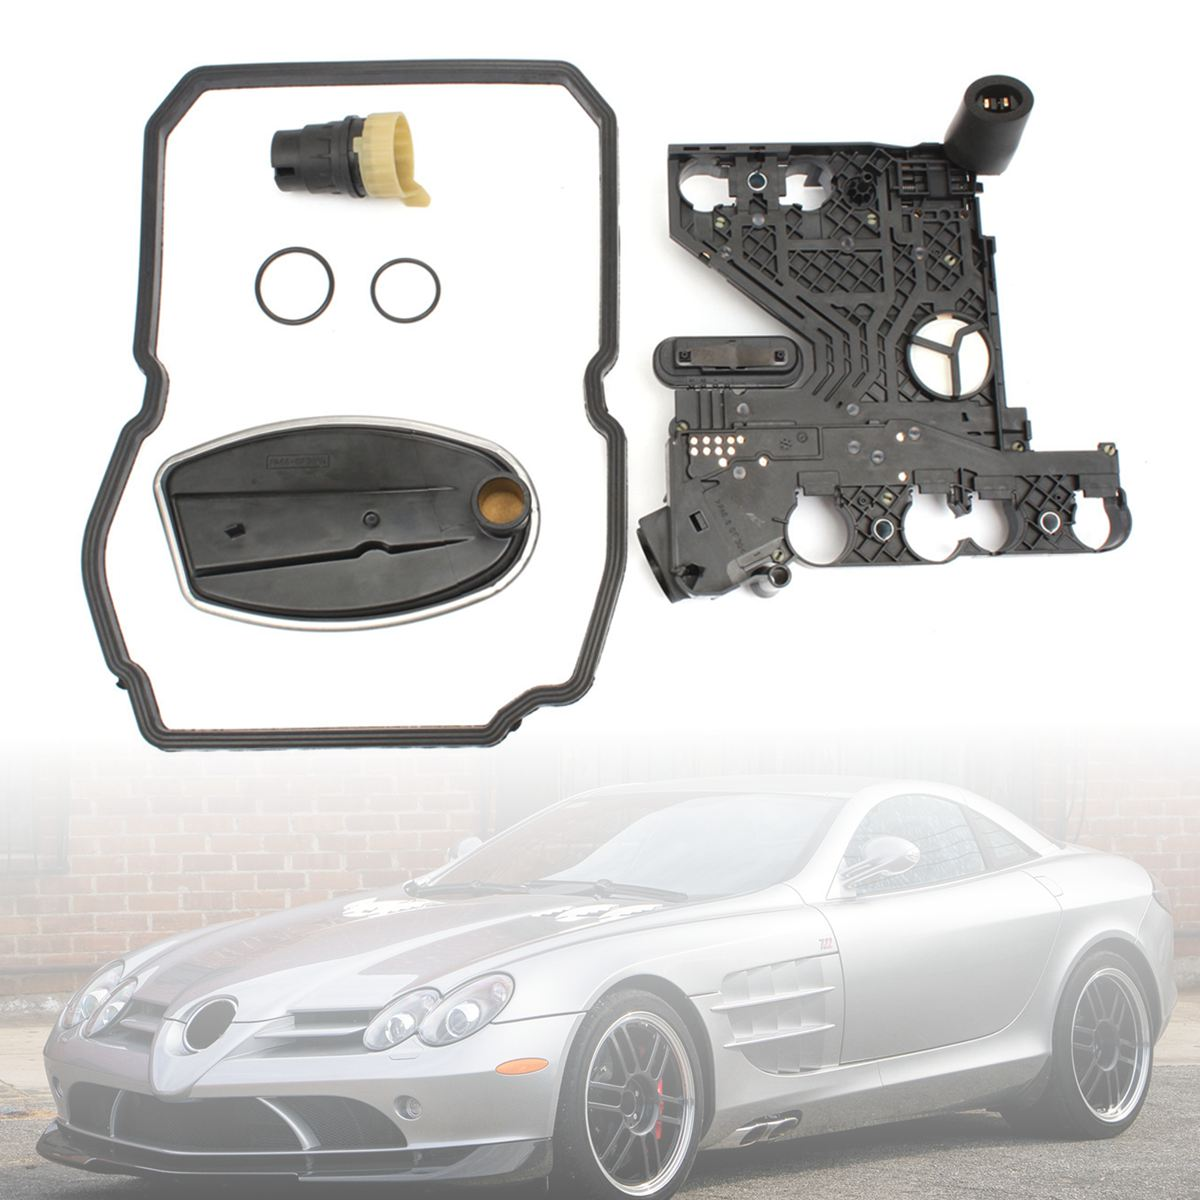 722.6 Gearbox Transmission Conductor Plate Connector Filter Gasket Kit Set For Benz CLK ML SL 1402770095722.6 Gearbox Transmission Conductor Plate Connector Filter Gasket Kit Set For Benz CLK ML SL 1402770095